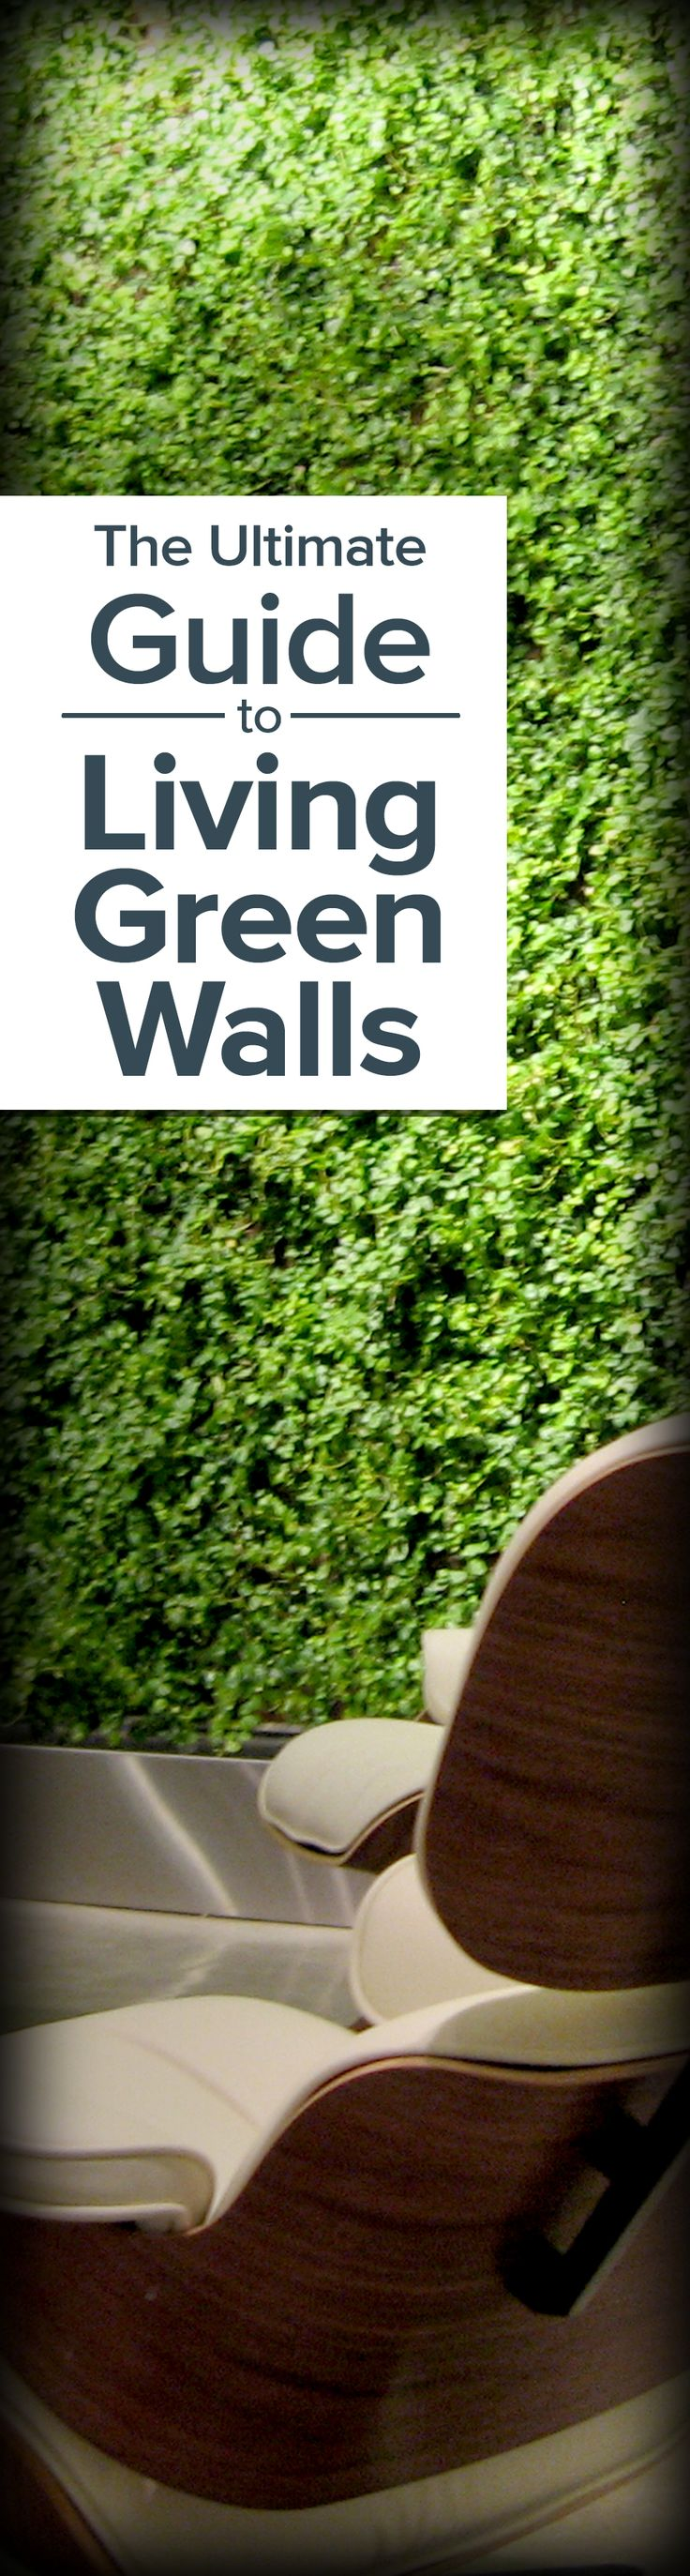 Urban wall garden far out flora - Living Green Walls Or Vertical Gardens Are The Hottest Trend In Green Design Learn Everything You Know In Ambius Ultimate Guide To Living Green Walls